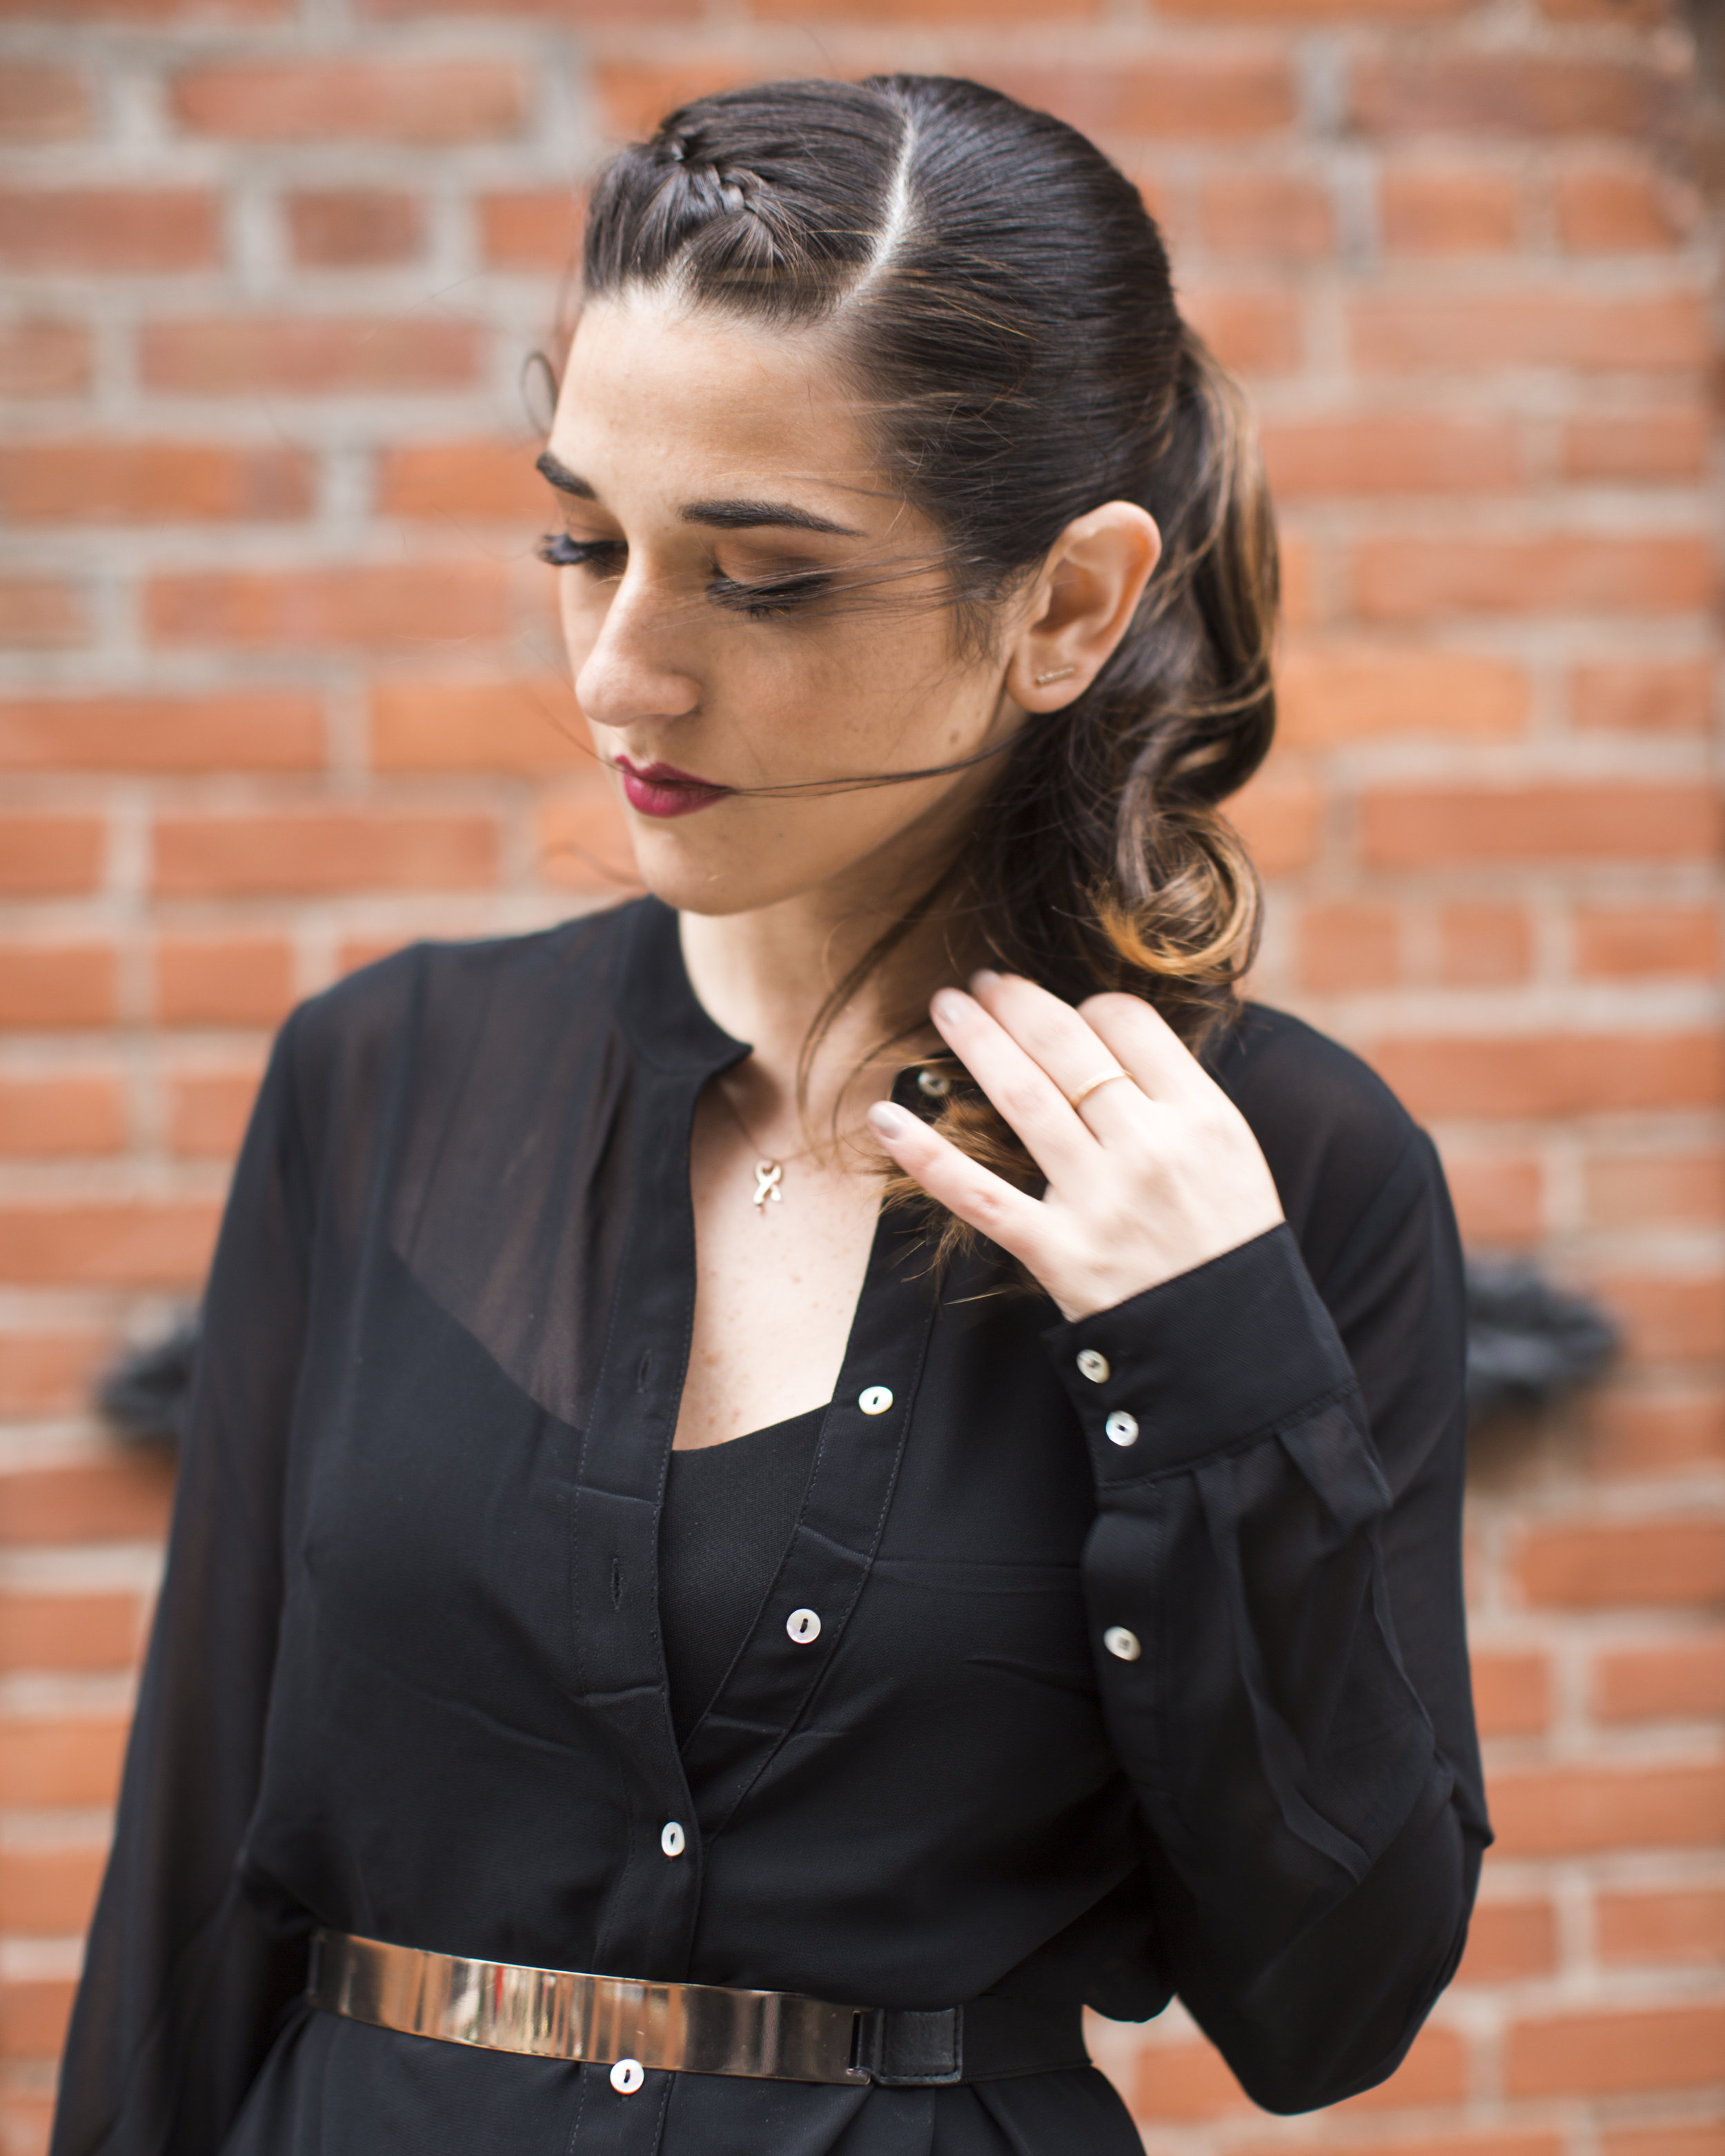 Gold Ribbon Pendant Leibish and Co. Diamonds Louboutins & Love Fashion Blog Esther Santer NYC Street Style Blogger Monochrome Mules Necklace Braid Hair Girl Women Shirt Dress All Black Outfit Trendy Jewelry Red Lipstick OOTD Wear Inspo Bag Shop Inspo.jpg